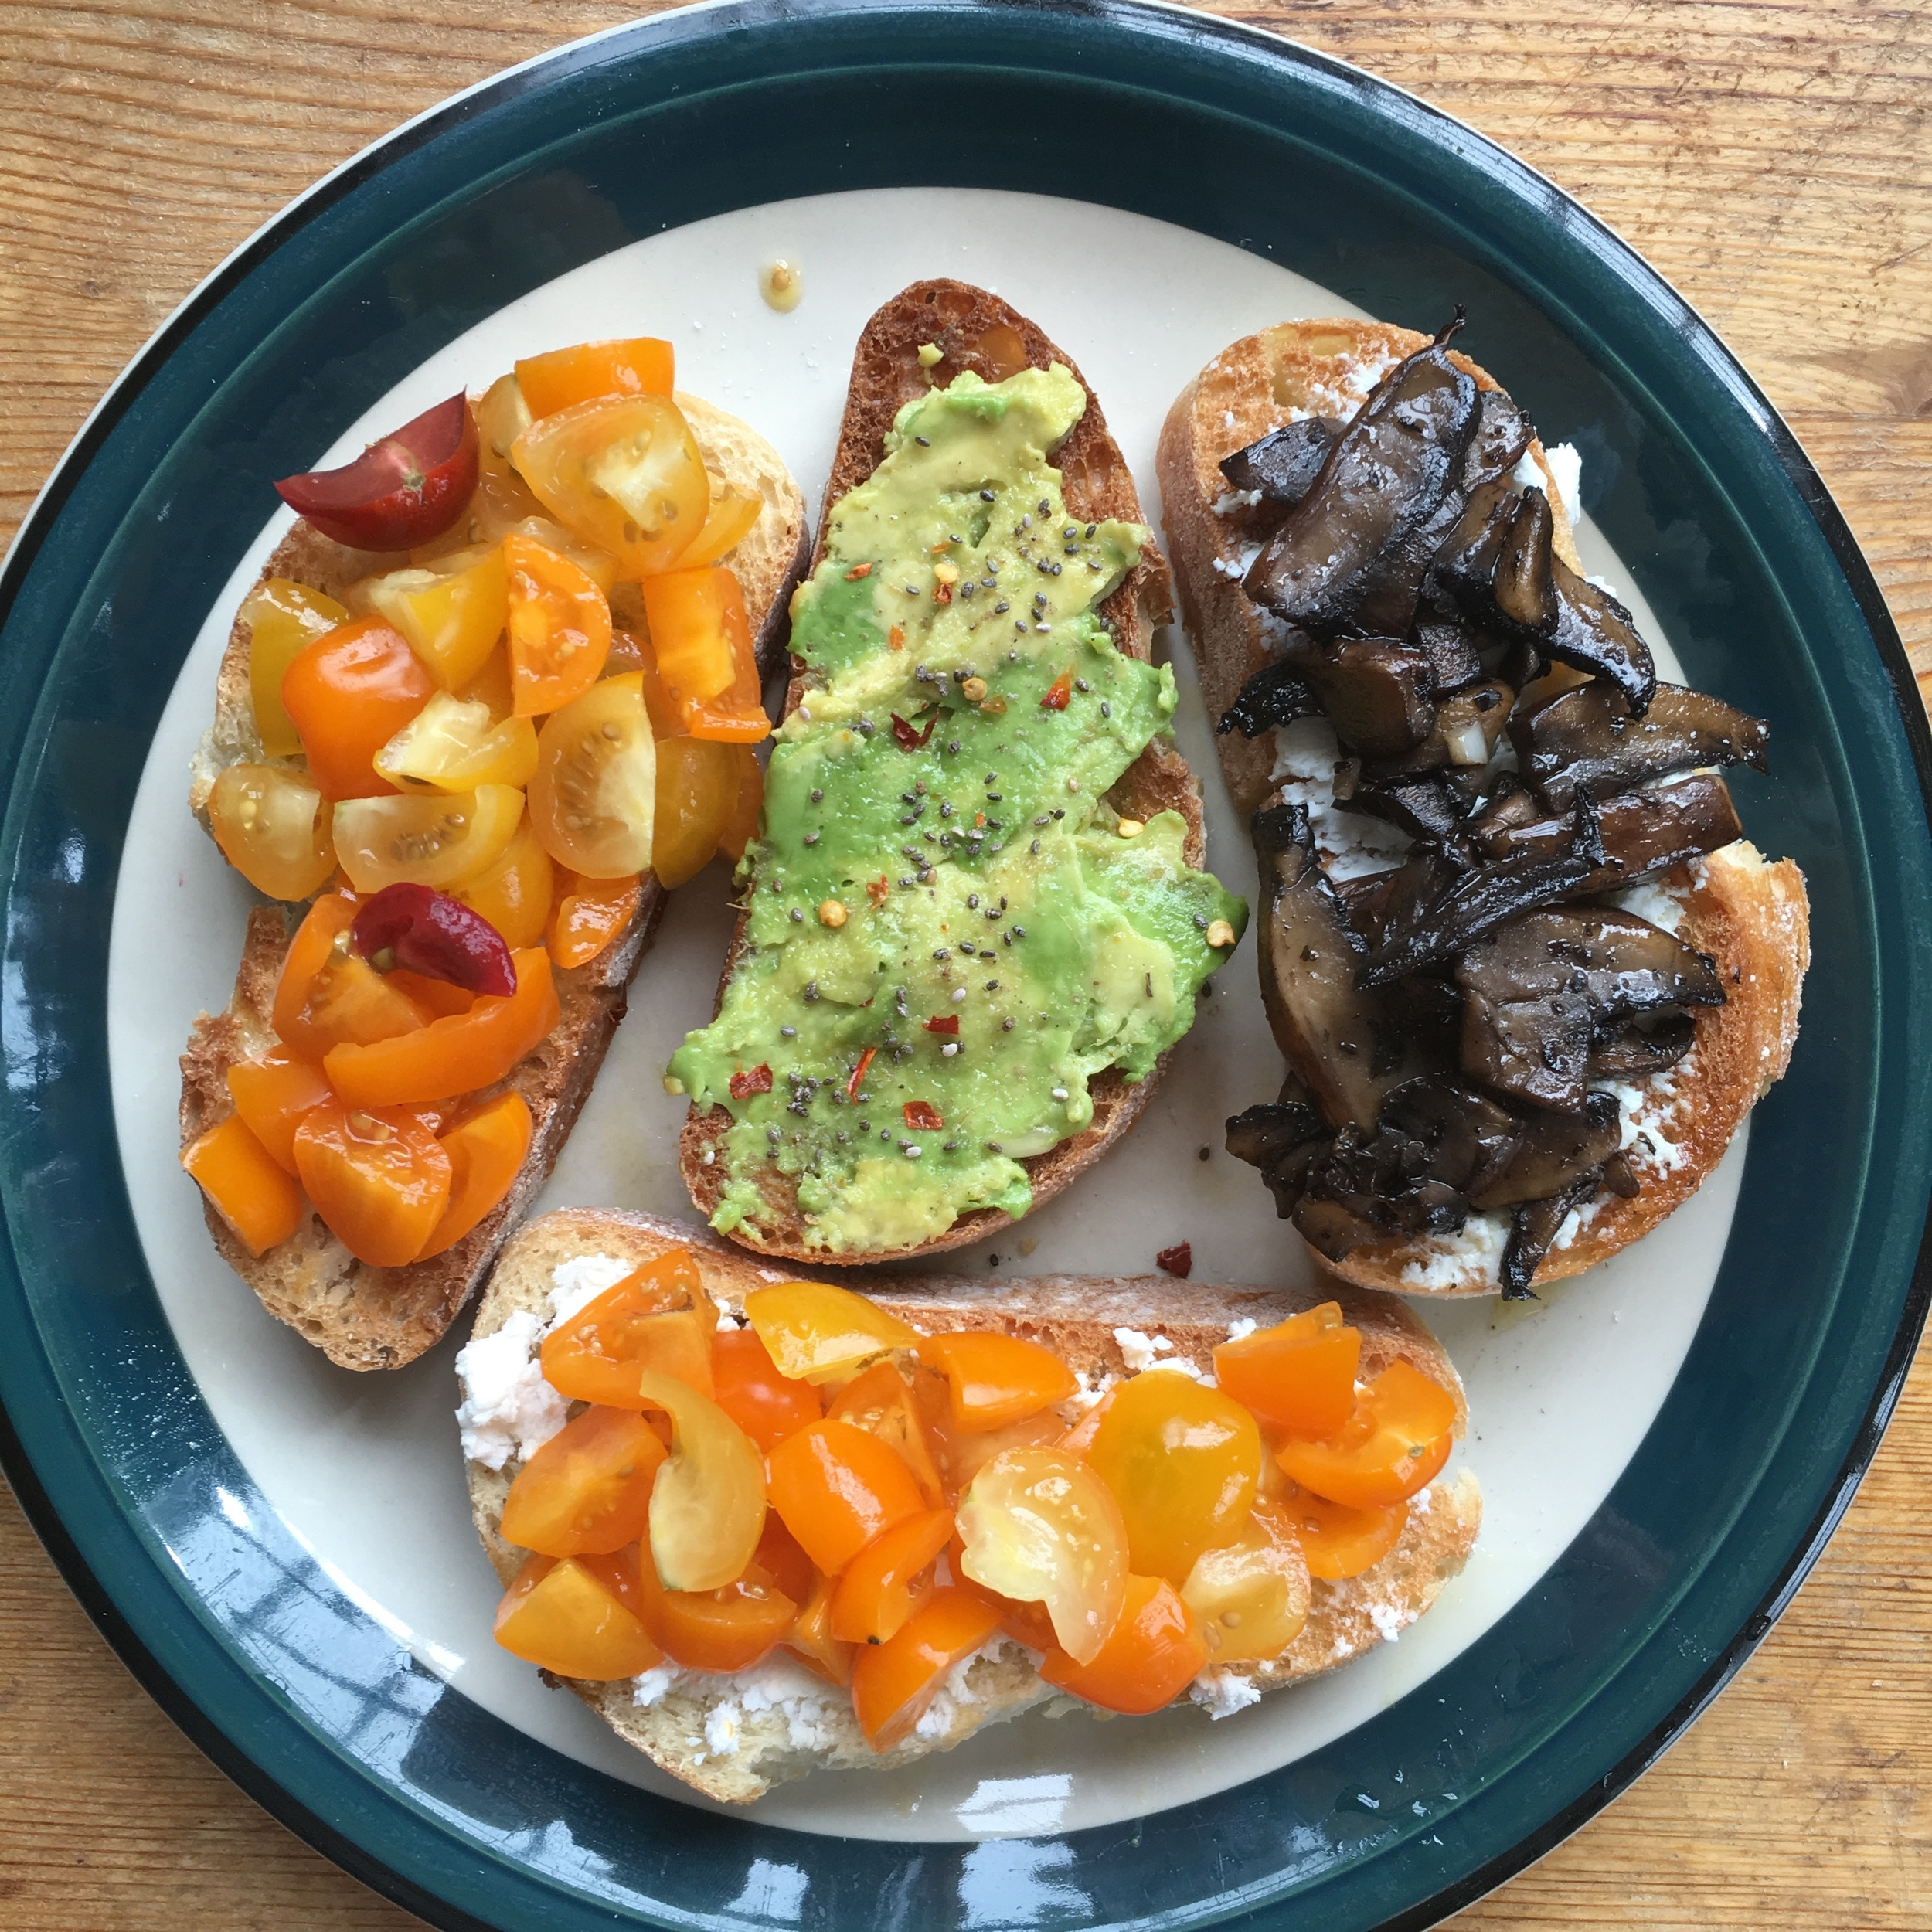 Homemade bruschetta + avo toast